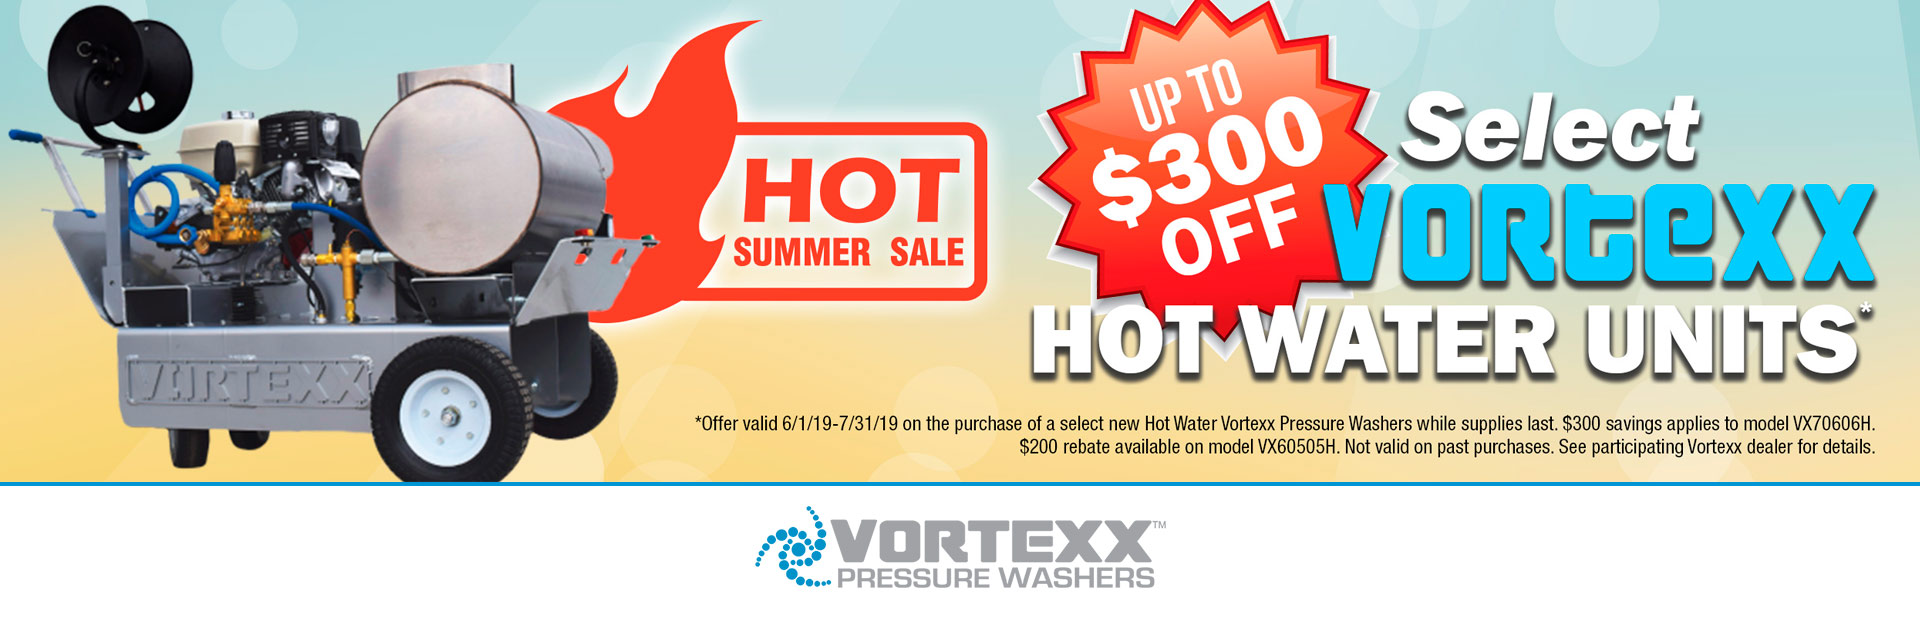 Vortexx: Up to $300 Off Select Vortexx Hot Water Units